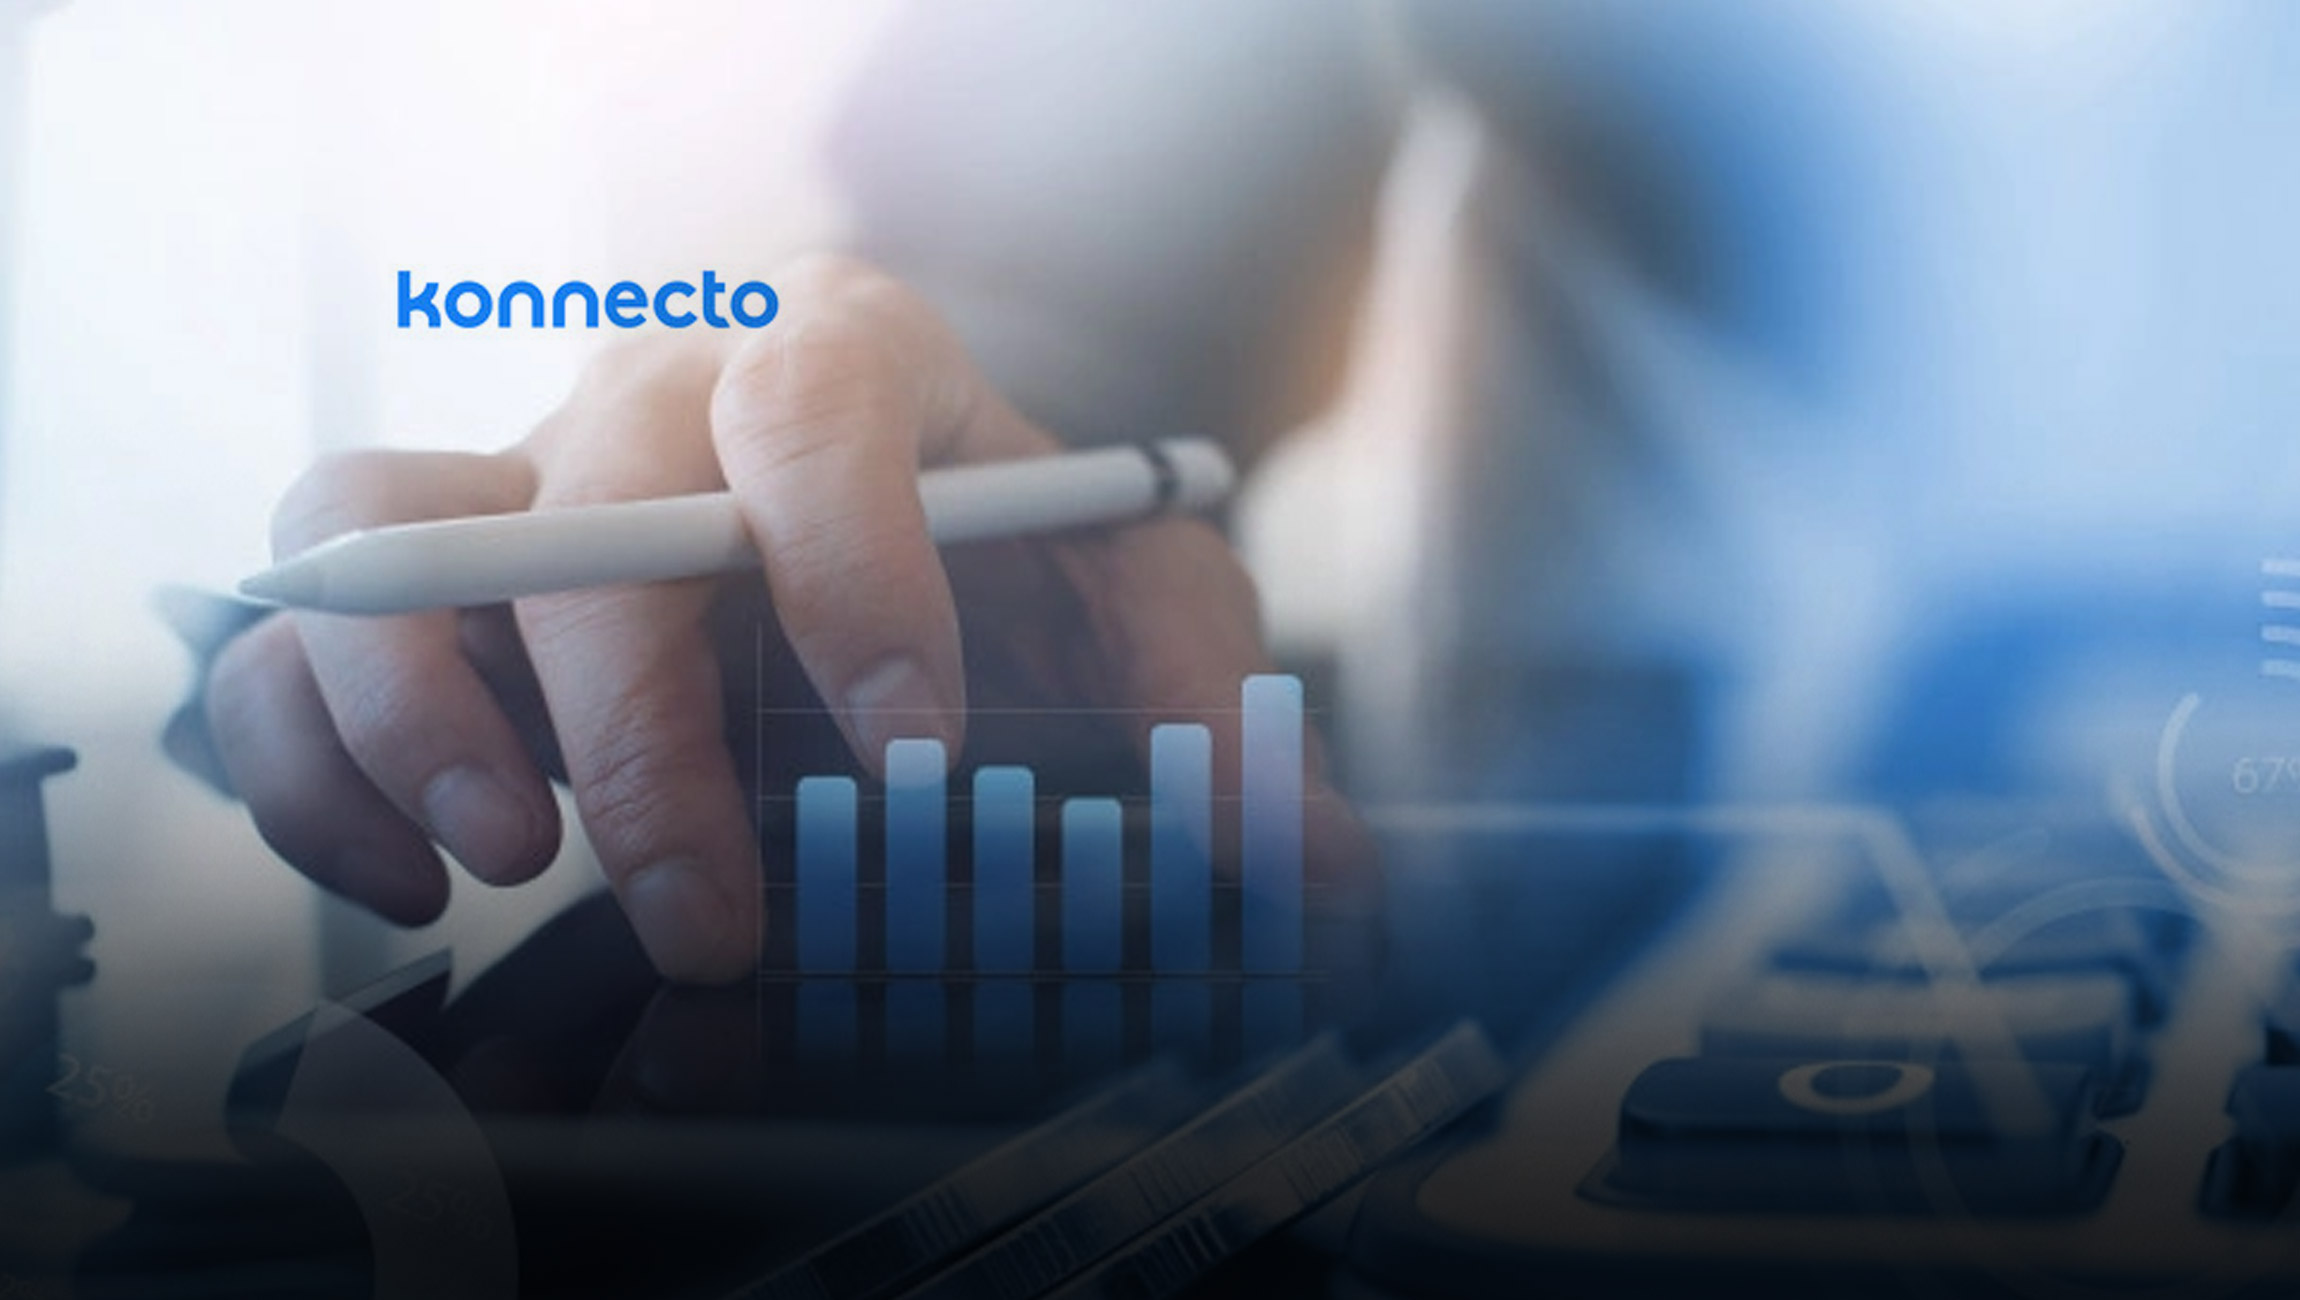 Konnecto Closes $3.5 Million Seed Round and Launches 'Reveal & Disrupt' to Provide Consumer Brands Unparalleled Visibility into the Earliest Stages of the Consumer Journey